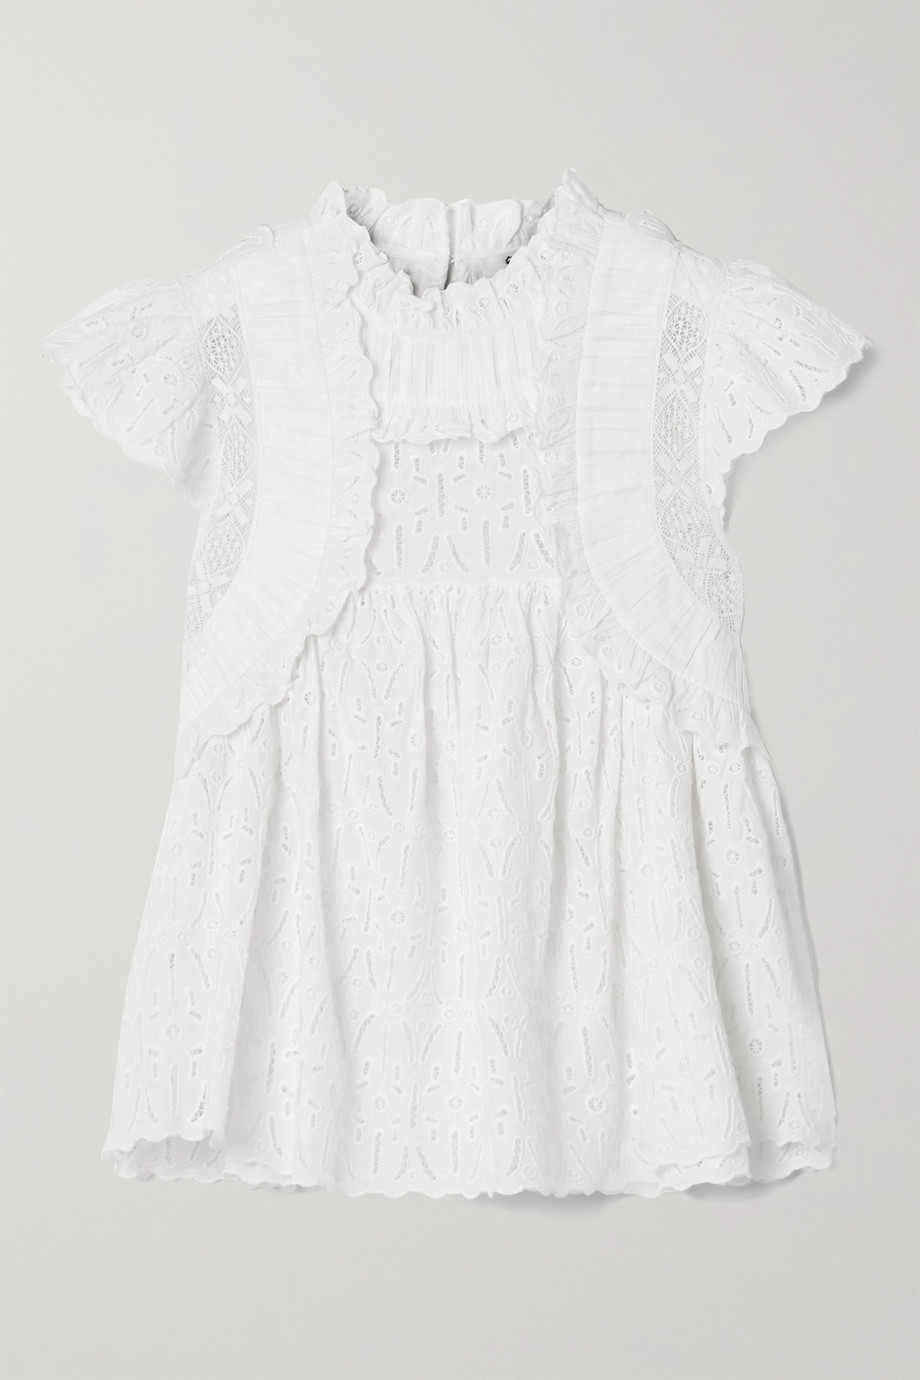 SEA Ingrid ruffled crochet-trimmed broderie anglaise cotton blouse